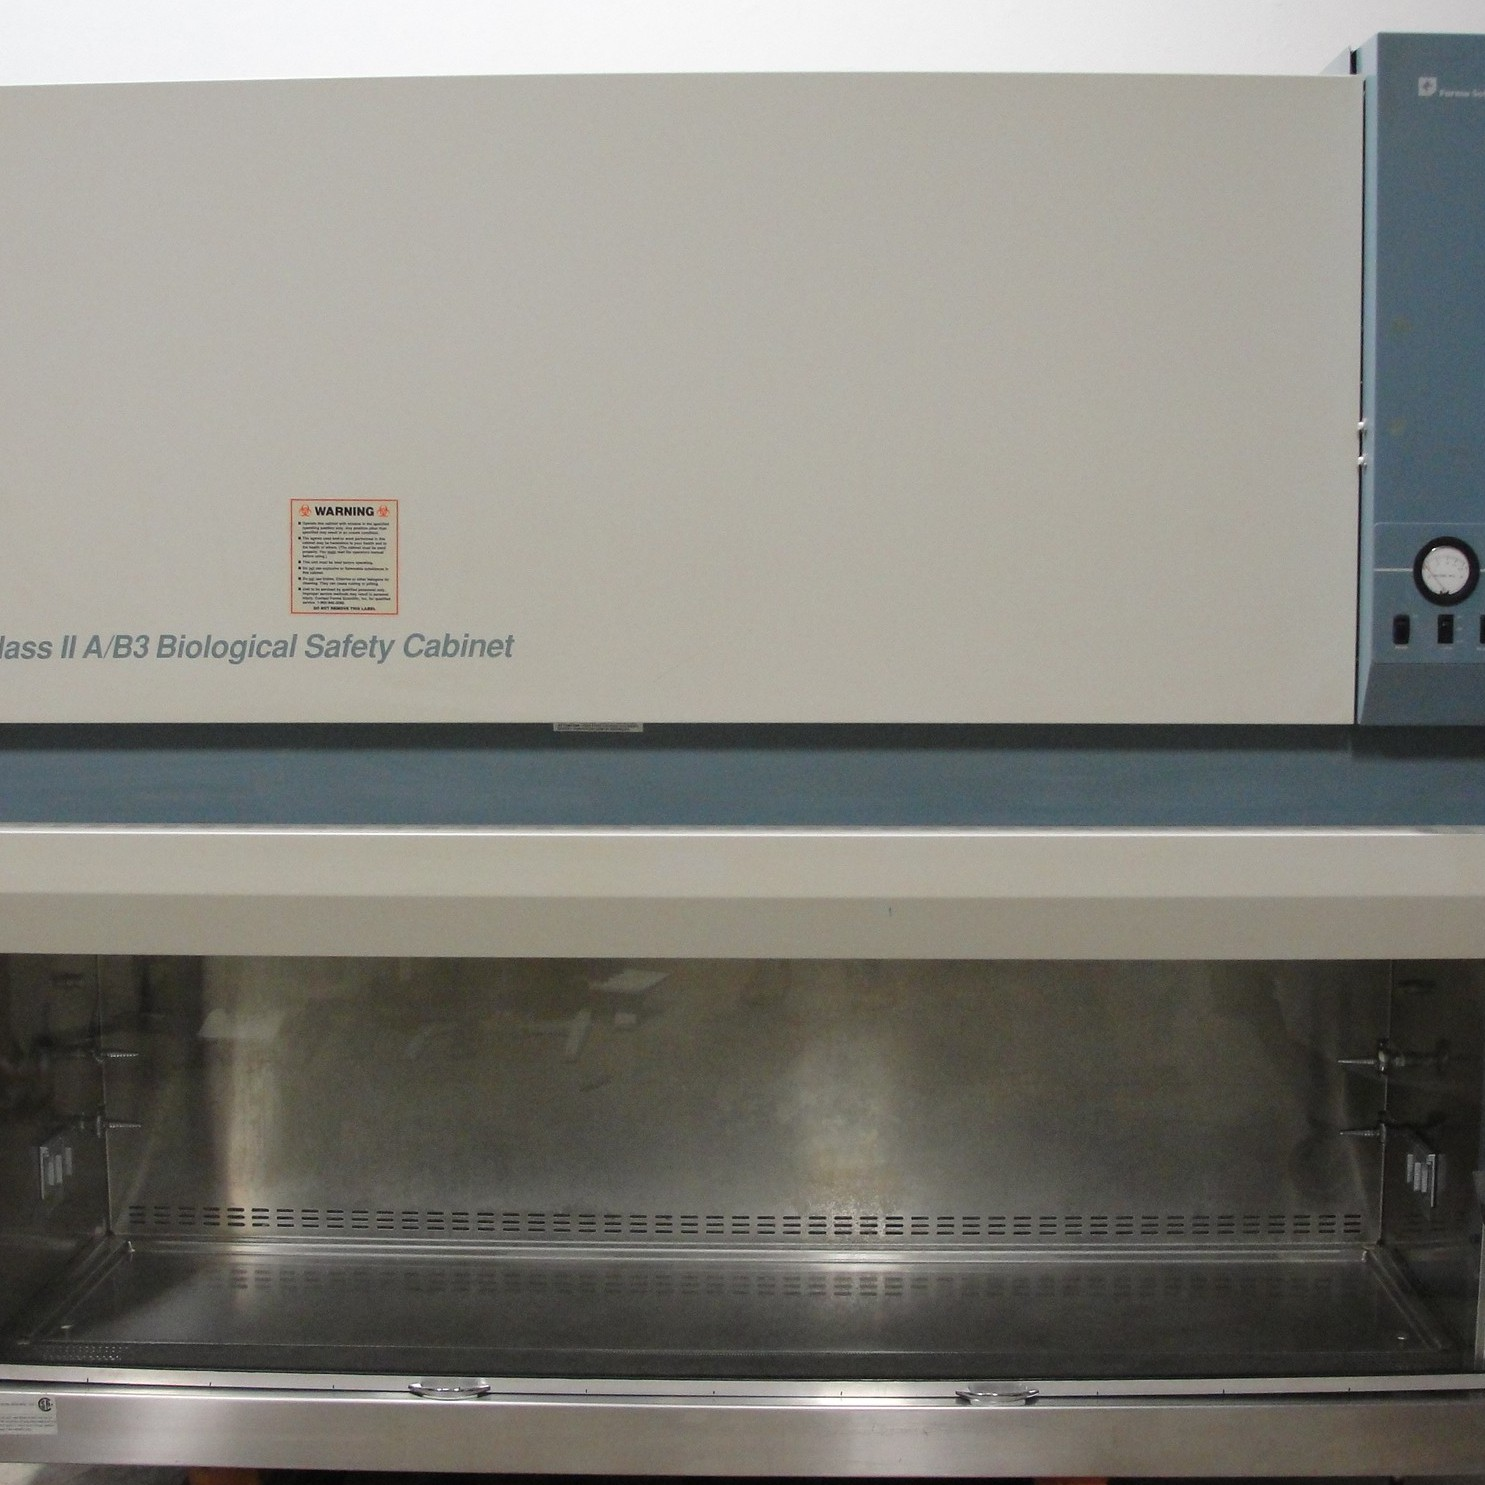 Thermo Scientific Class II, A/B3 Biological Safety Cabinet Type A/B3 Image